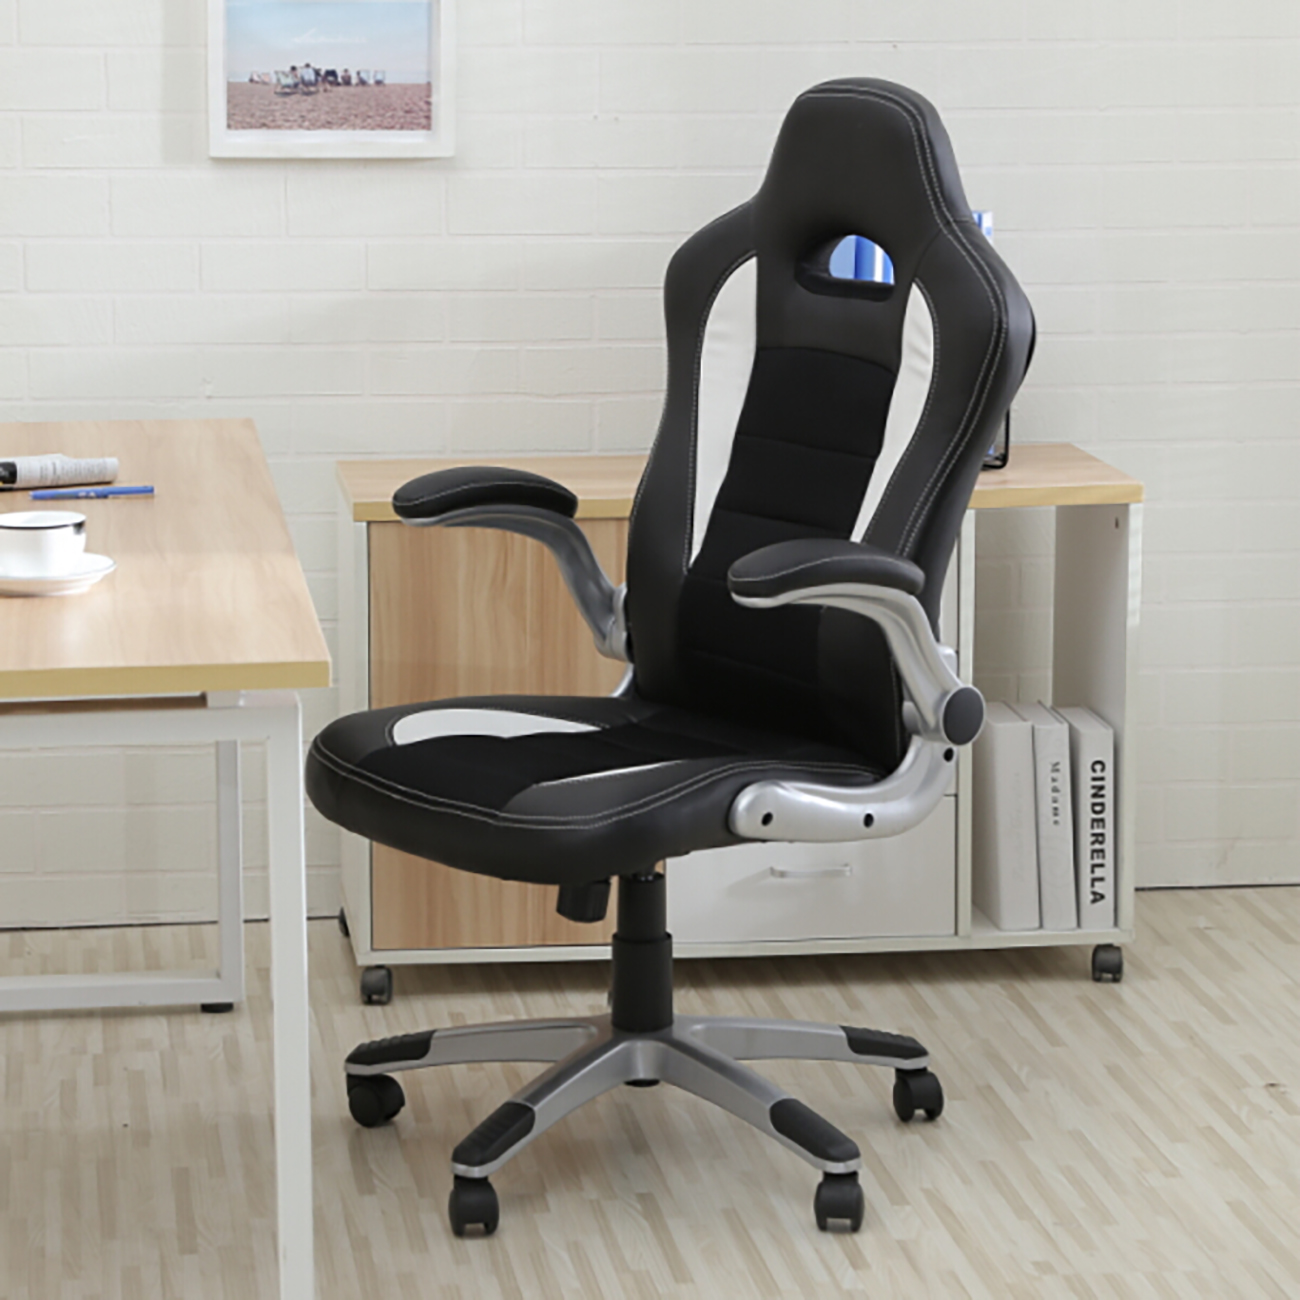 leather bucket chair swivel joint office ergonomic computer pu desk race car